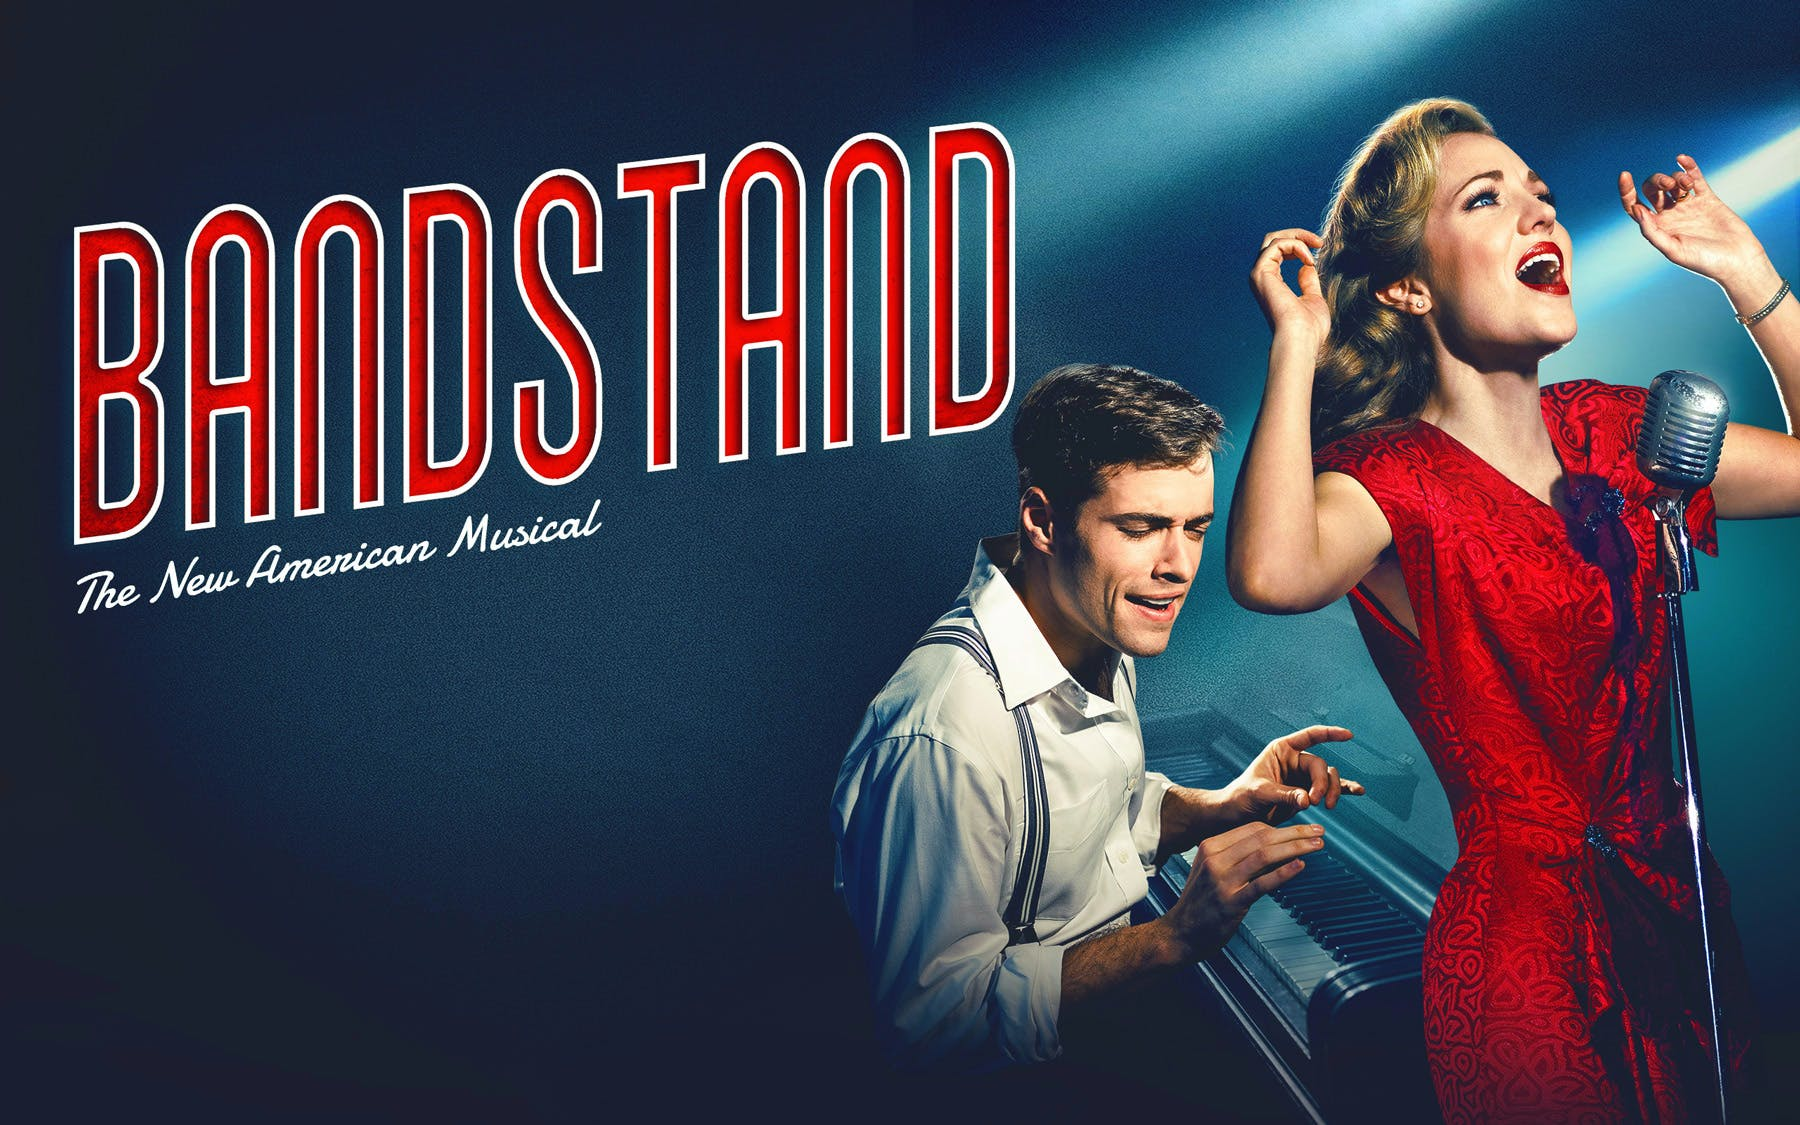 bandstand: the new american musical-4